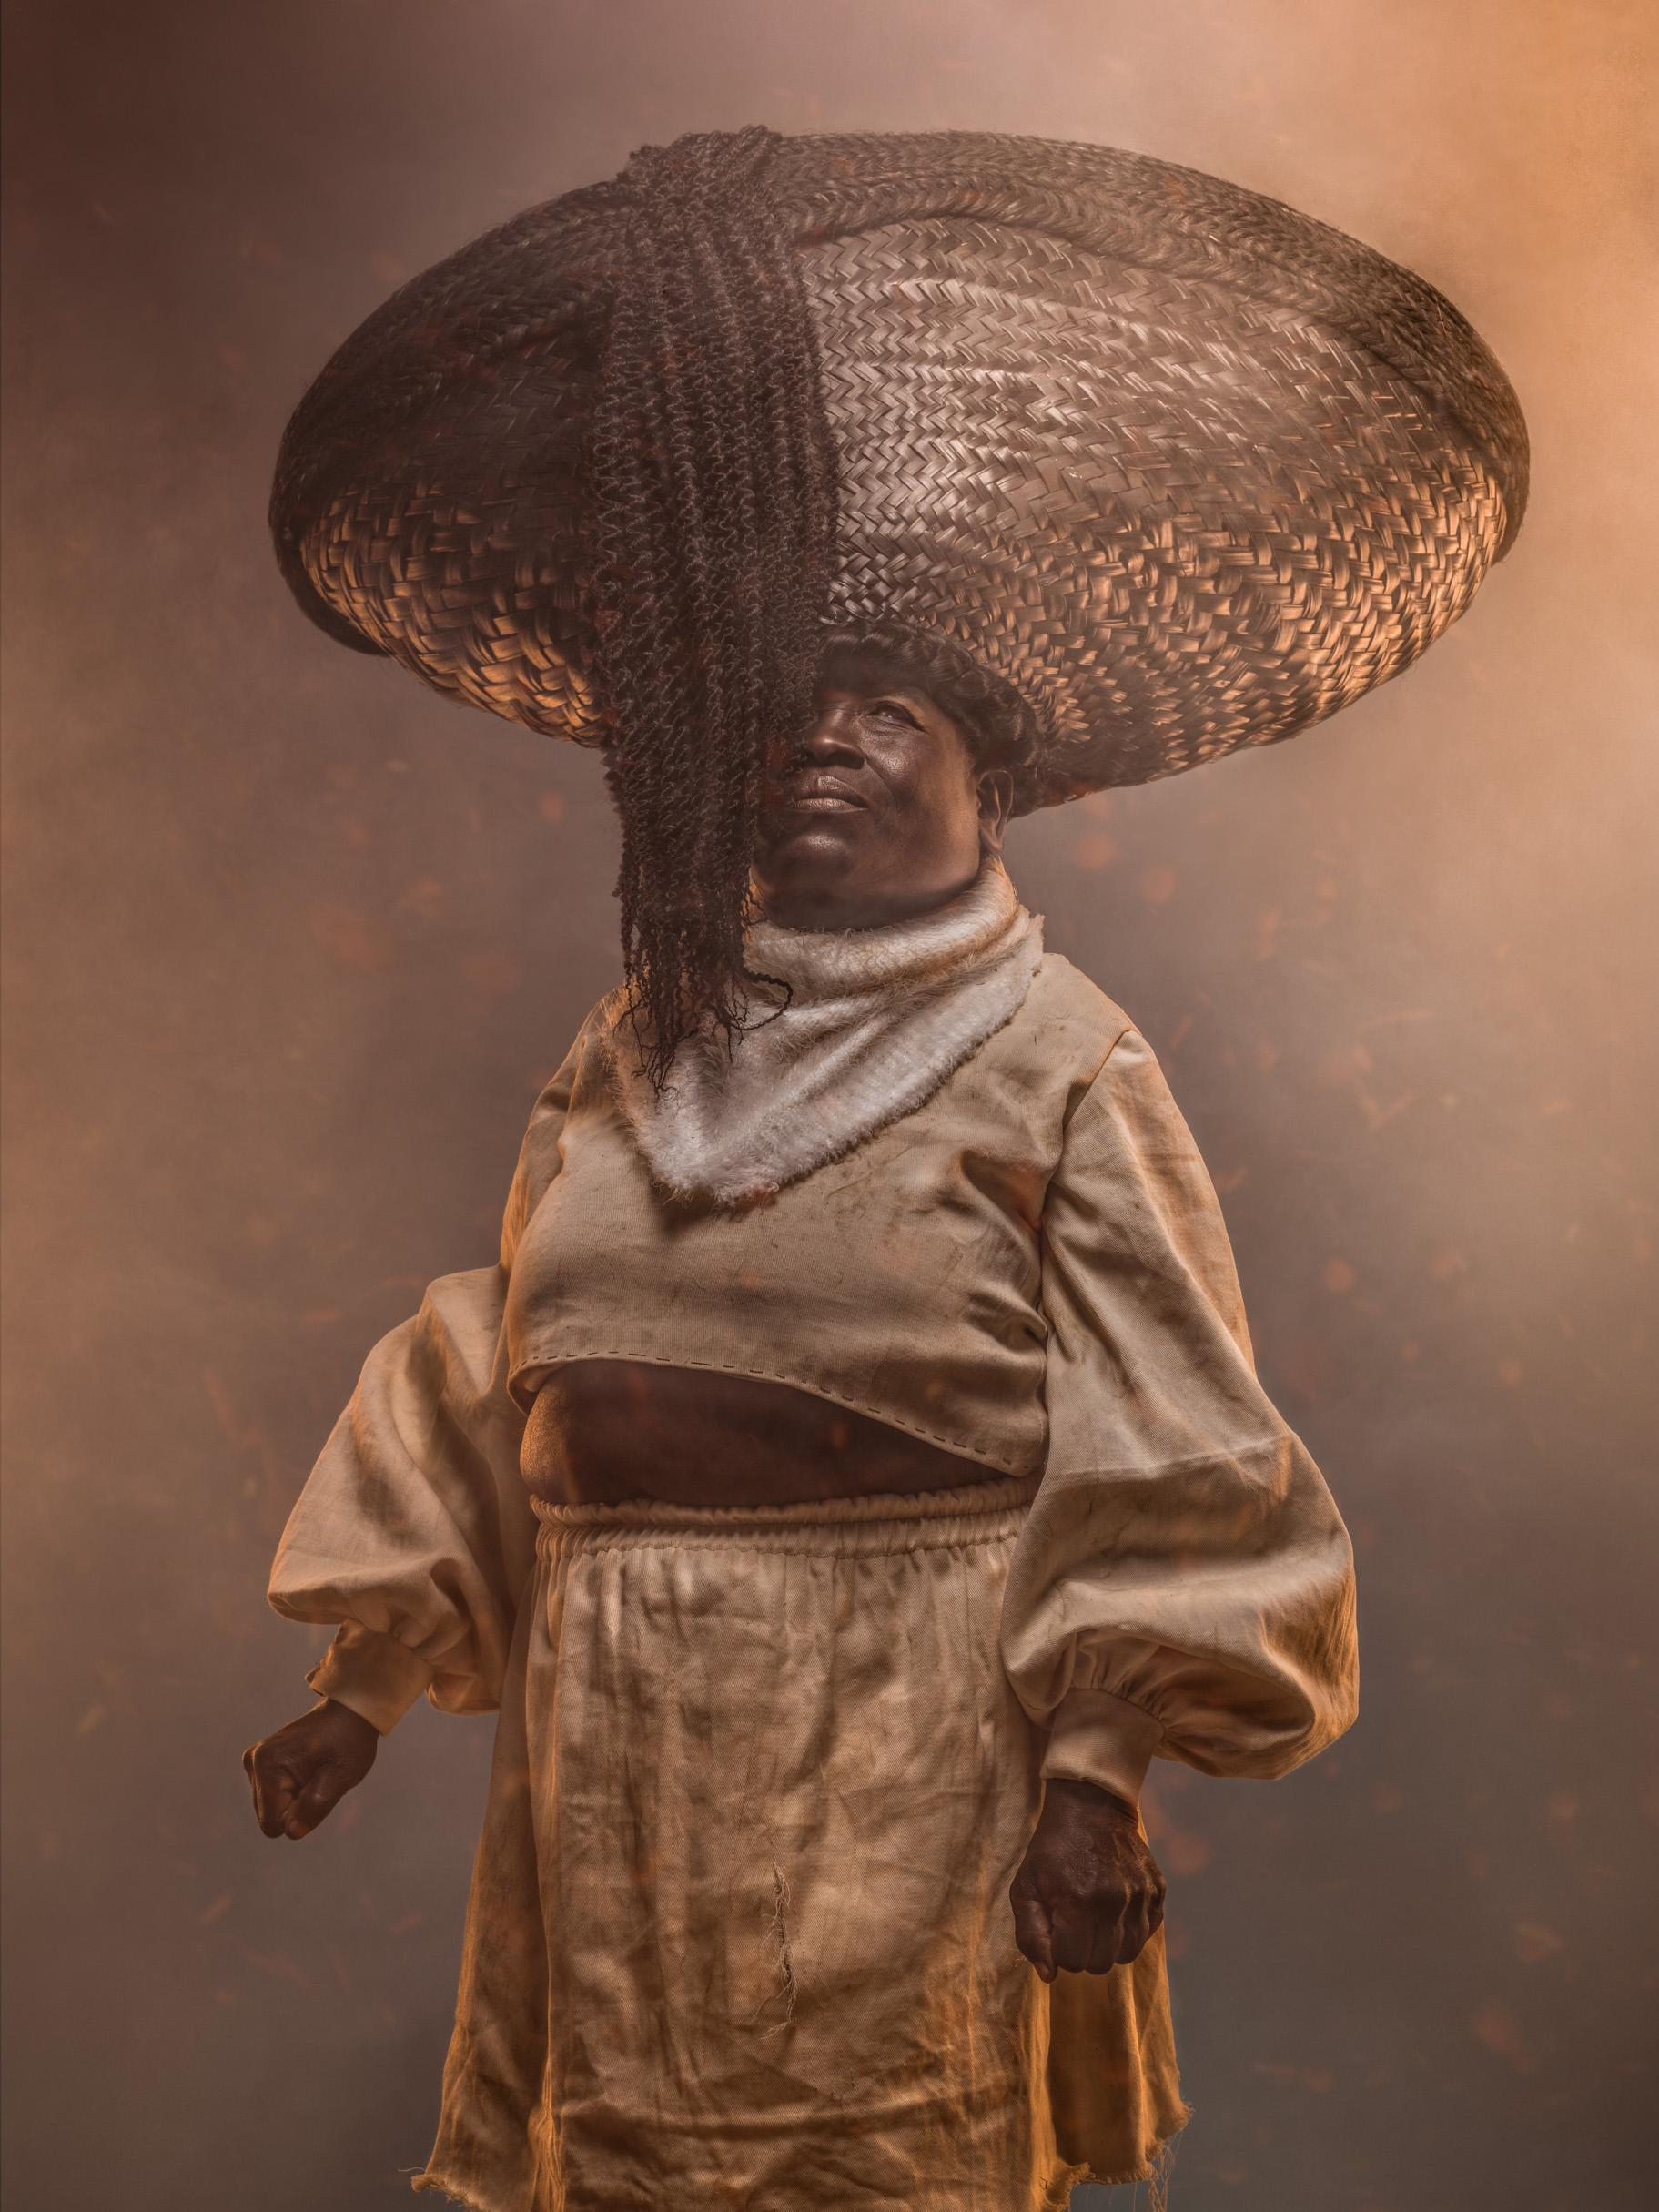 Achi from the series 'Kipipri 4,' which depicts four women who formed an alliance to undermine British colonial power in Kenya.